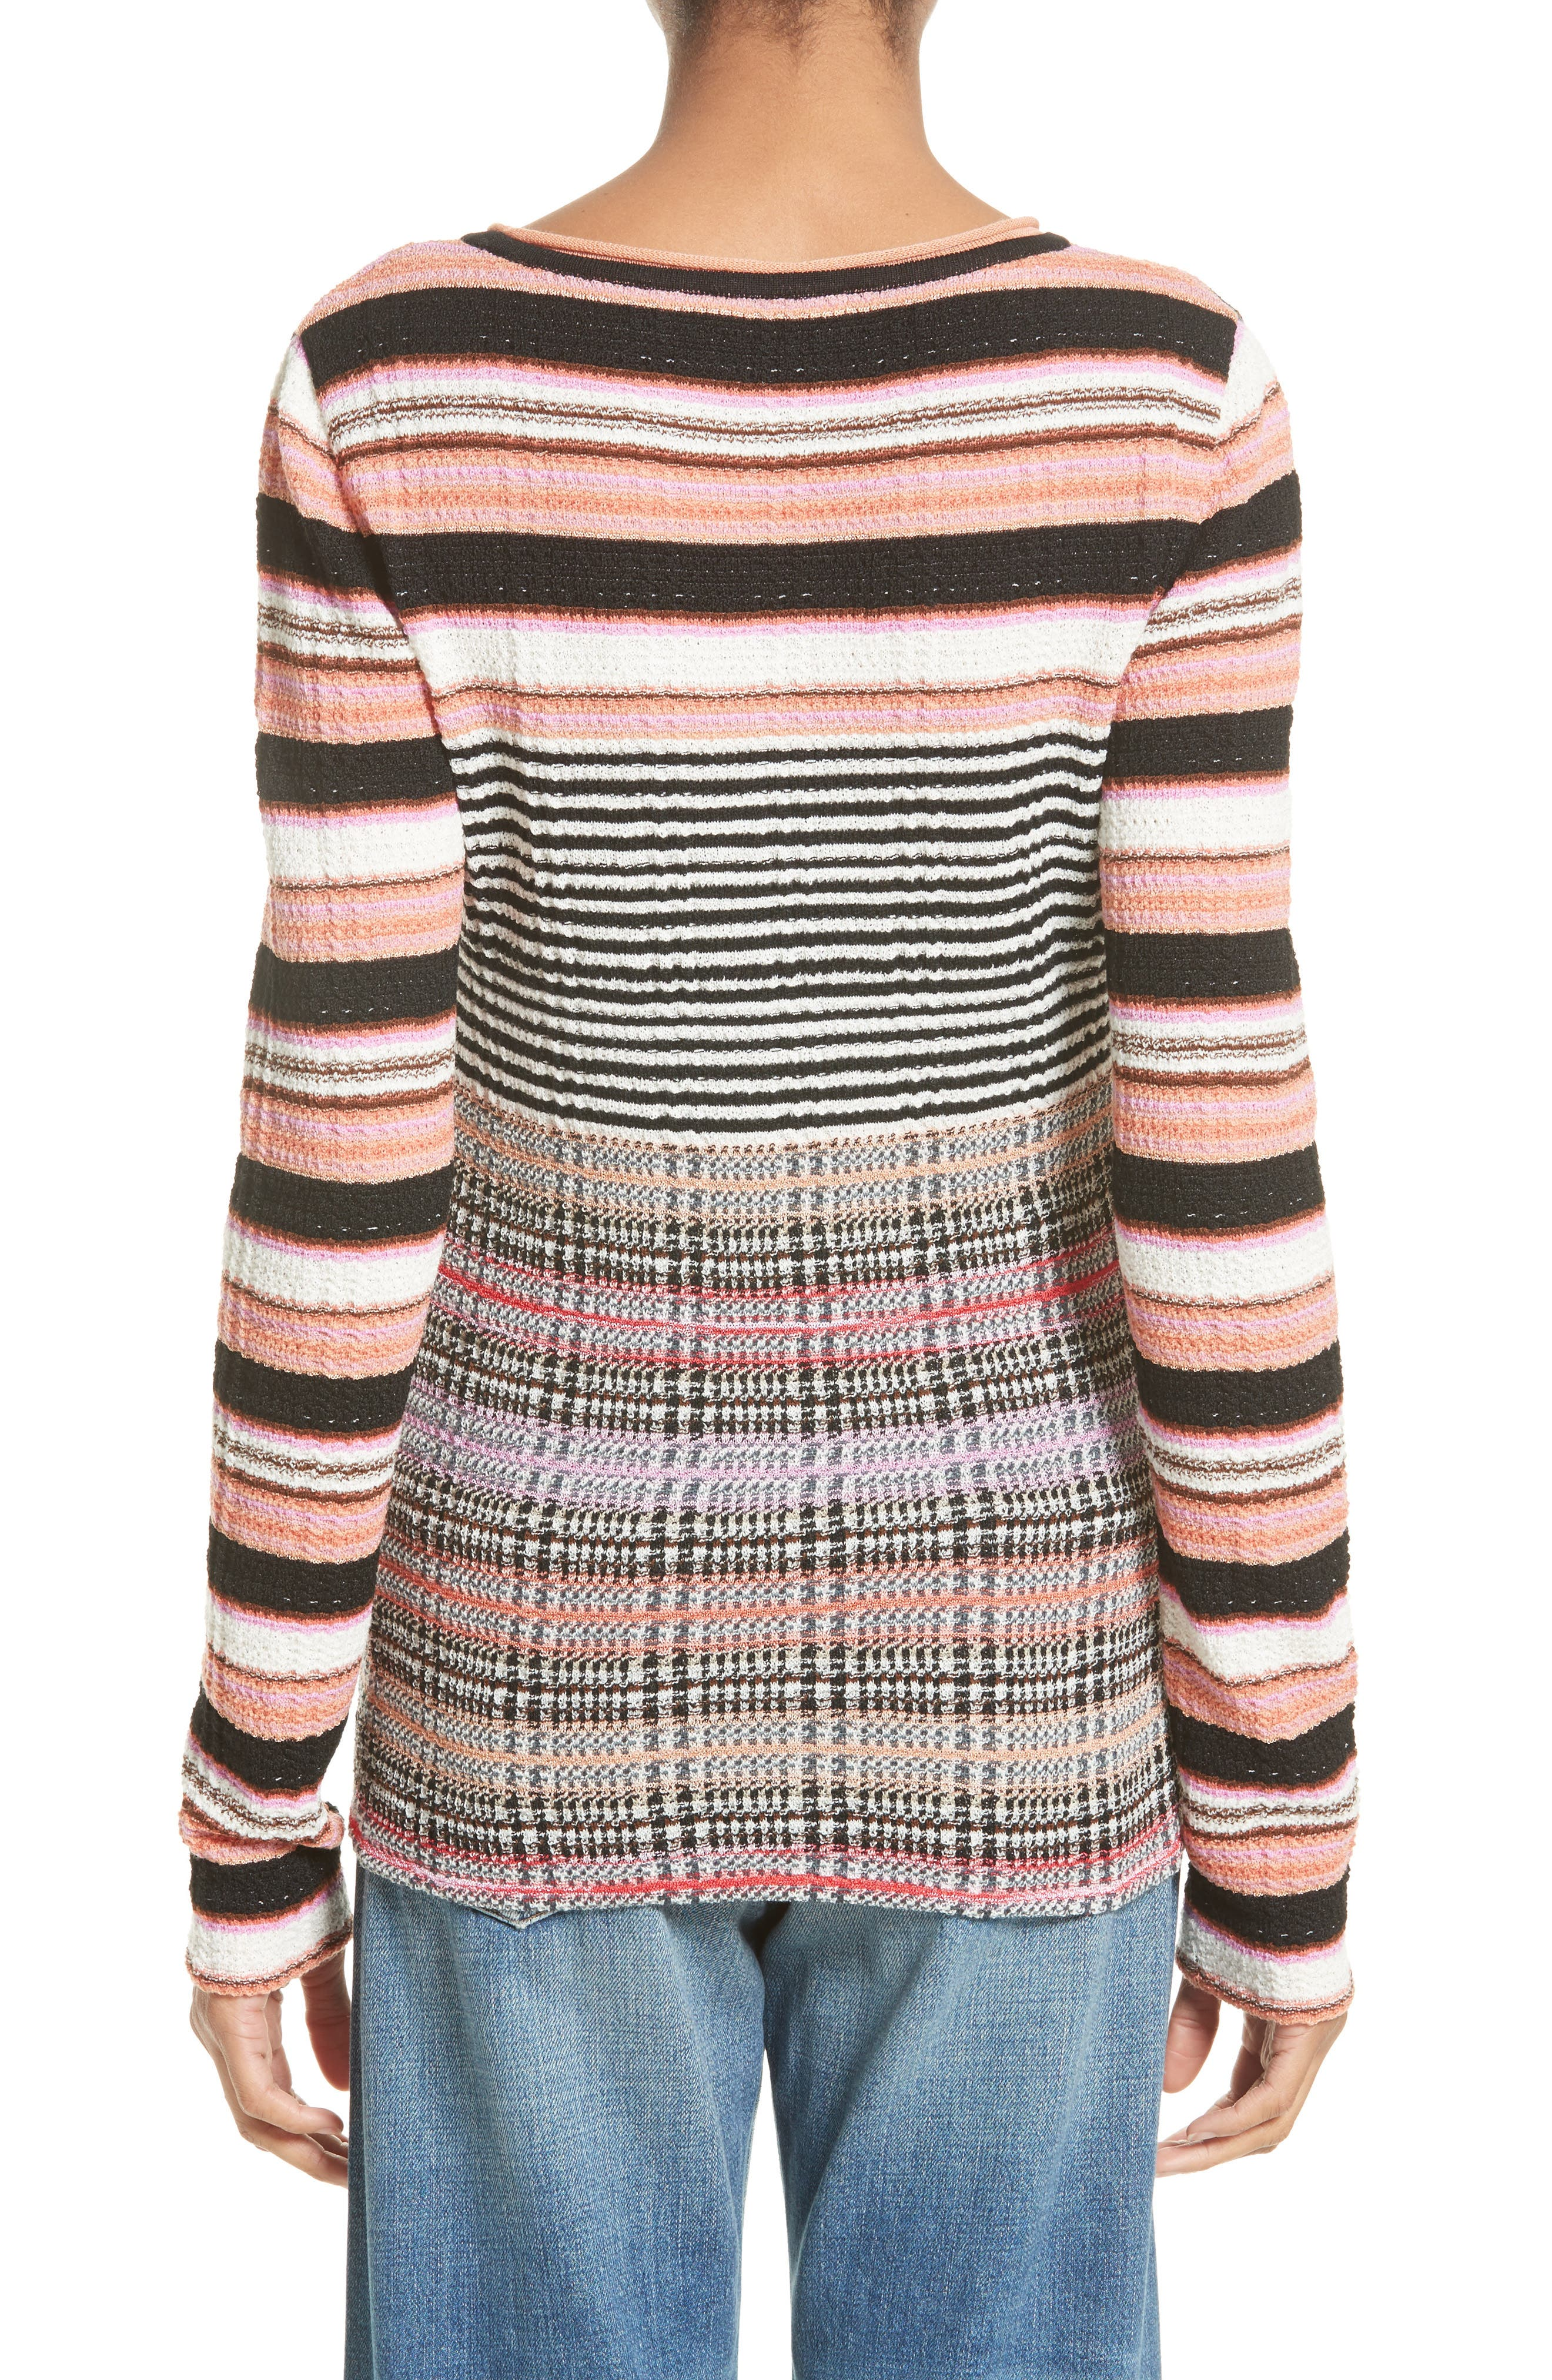 Wool Blend Sweater,                             Alternate thumbnail 2, color,                             650